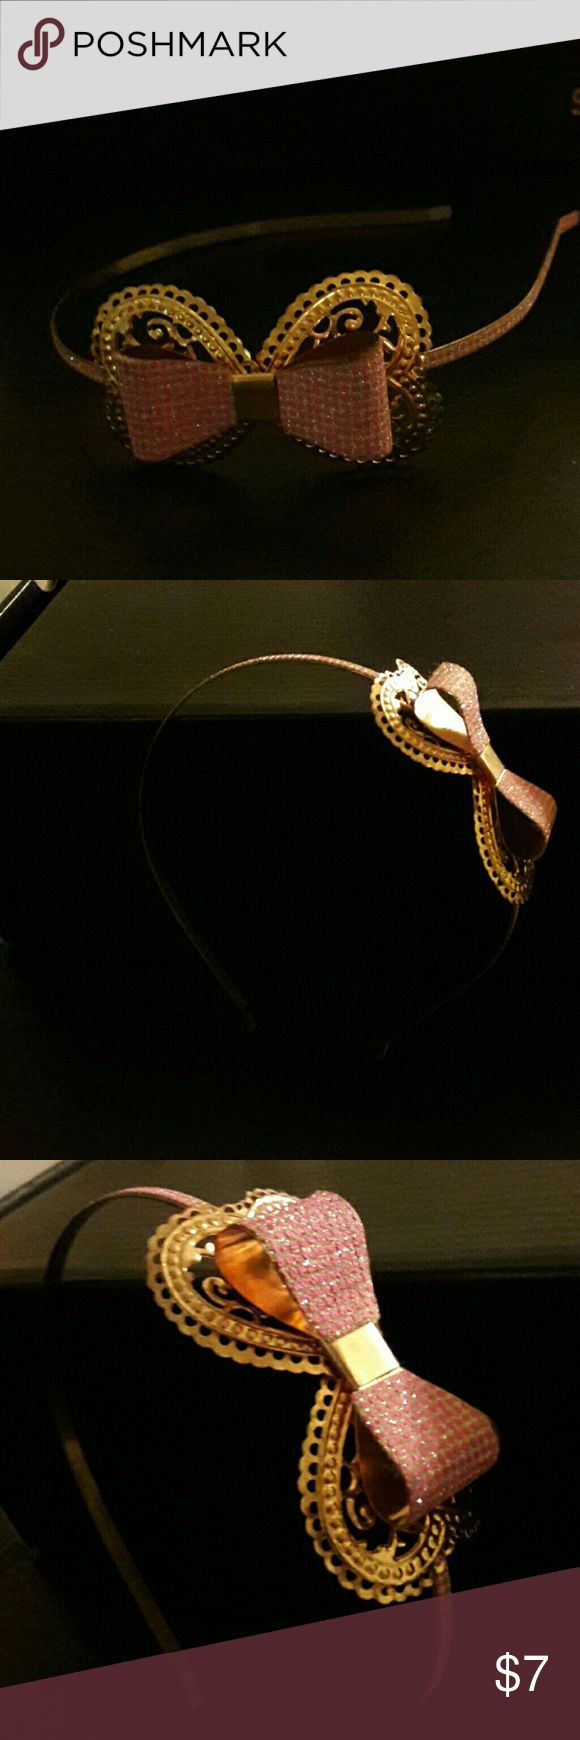 Pink bow metal headband Pink bow metal headband. Never used. Accessories Hair Accessories